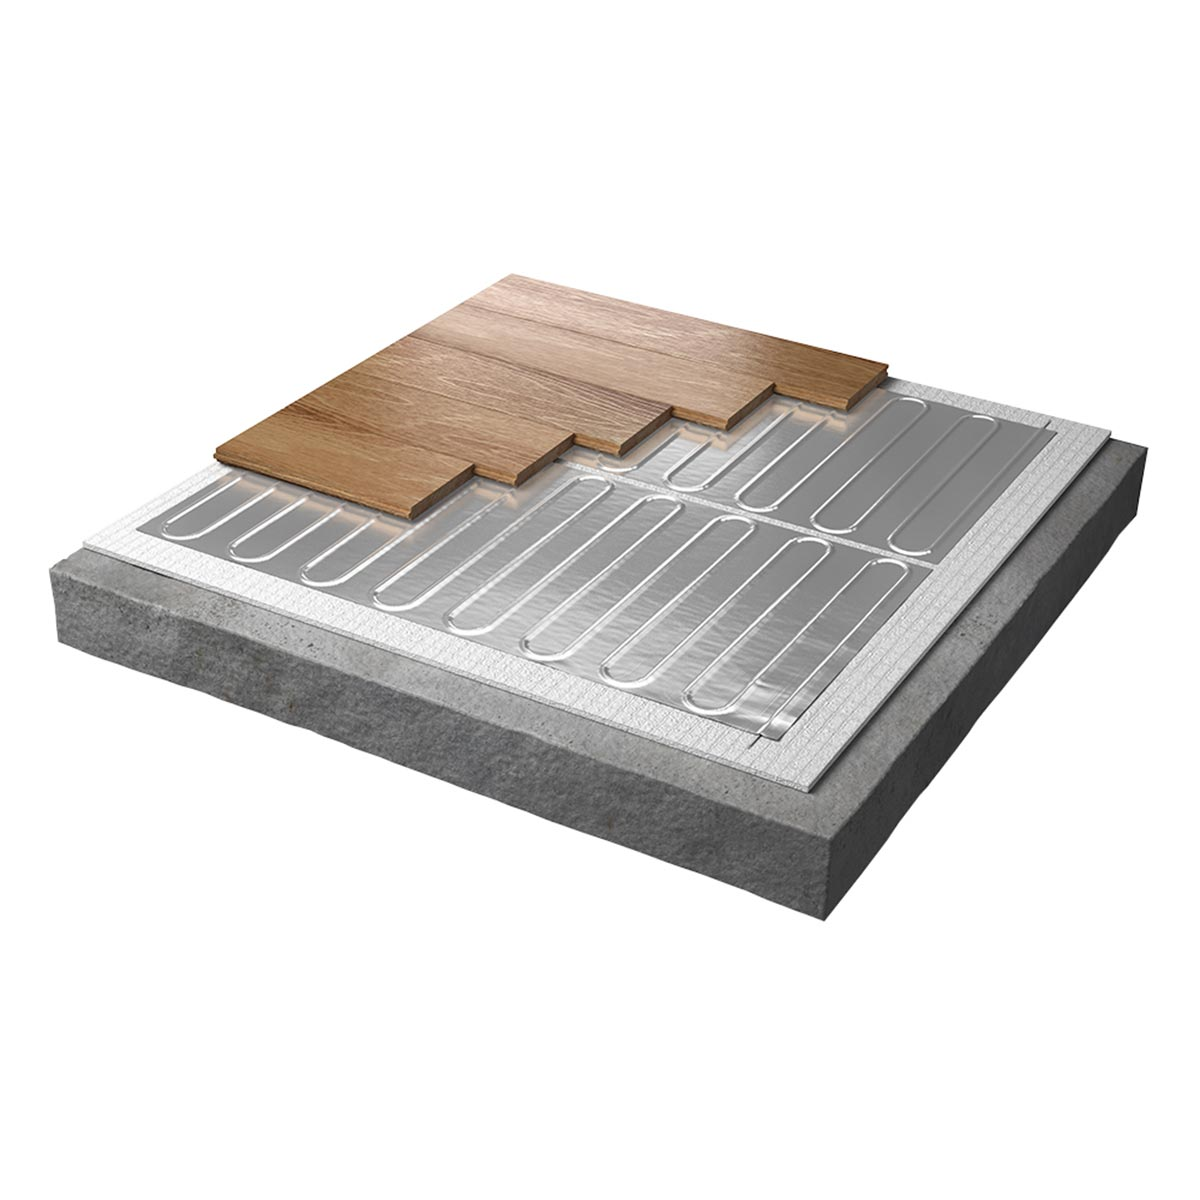 Underfloor Heating Carpet >> Erko Electric Underfloor Heating Carpet Wood Laminate